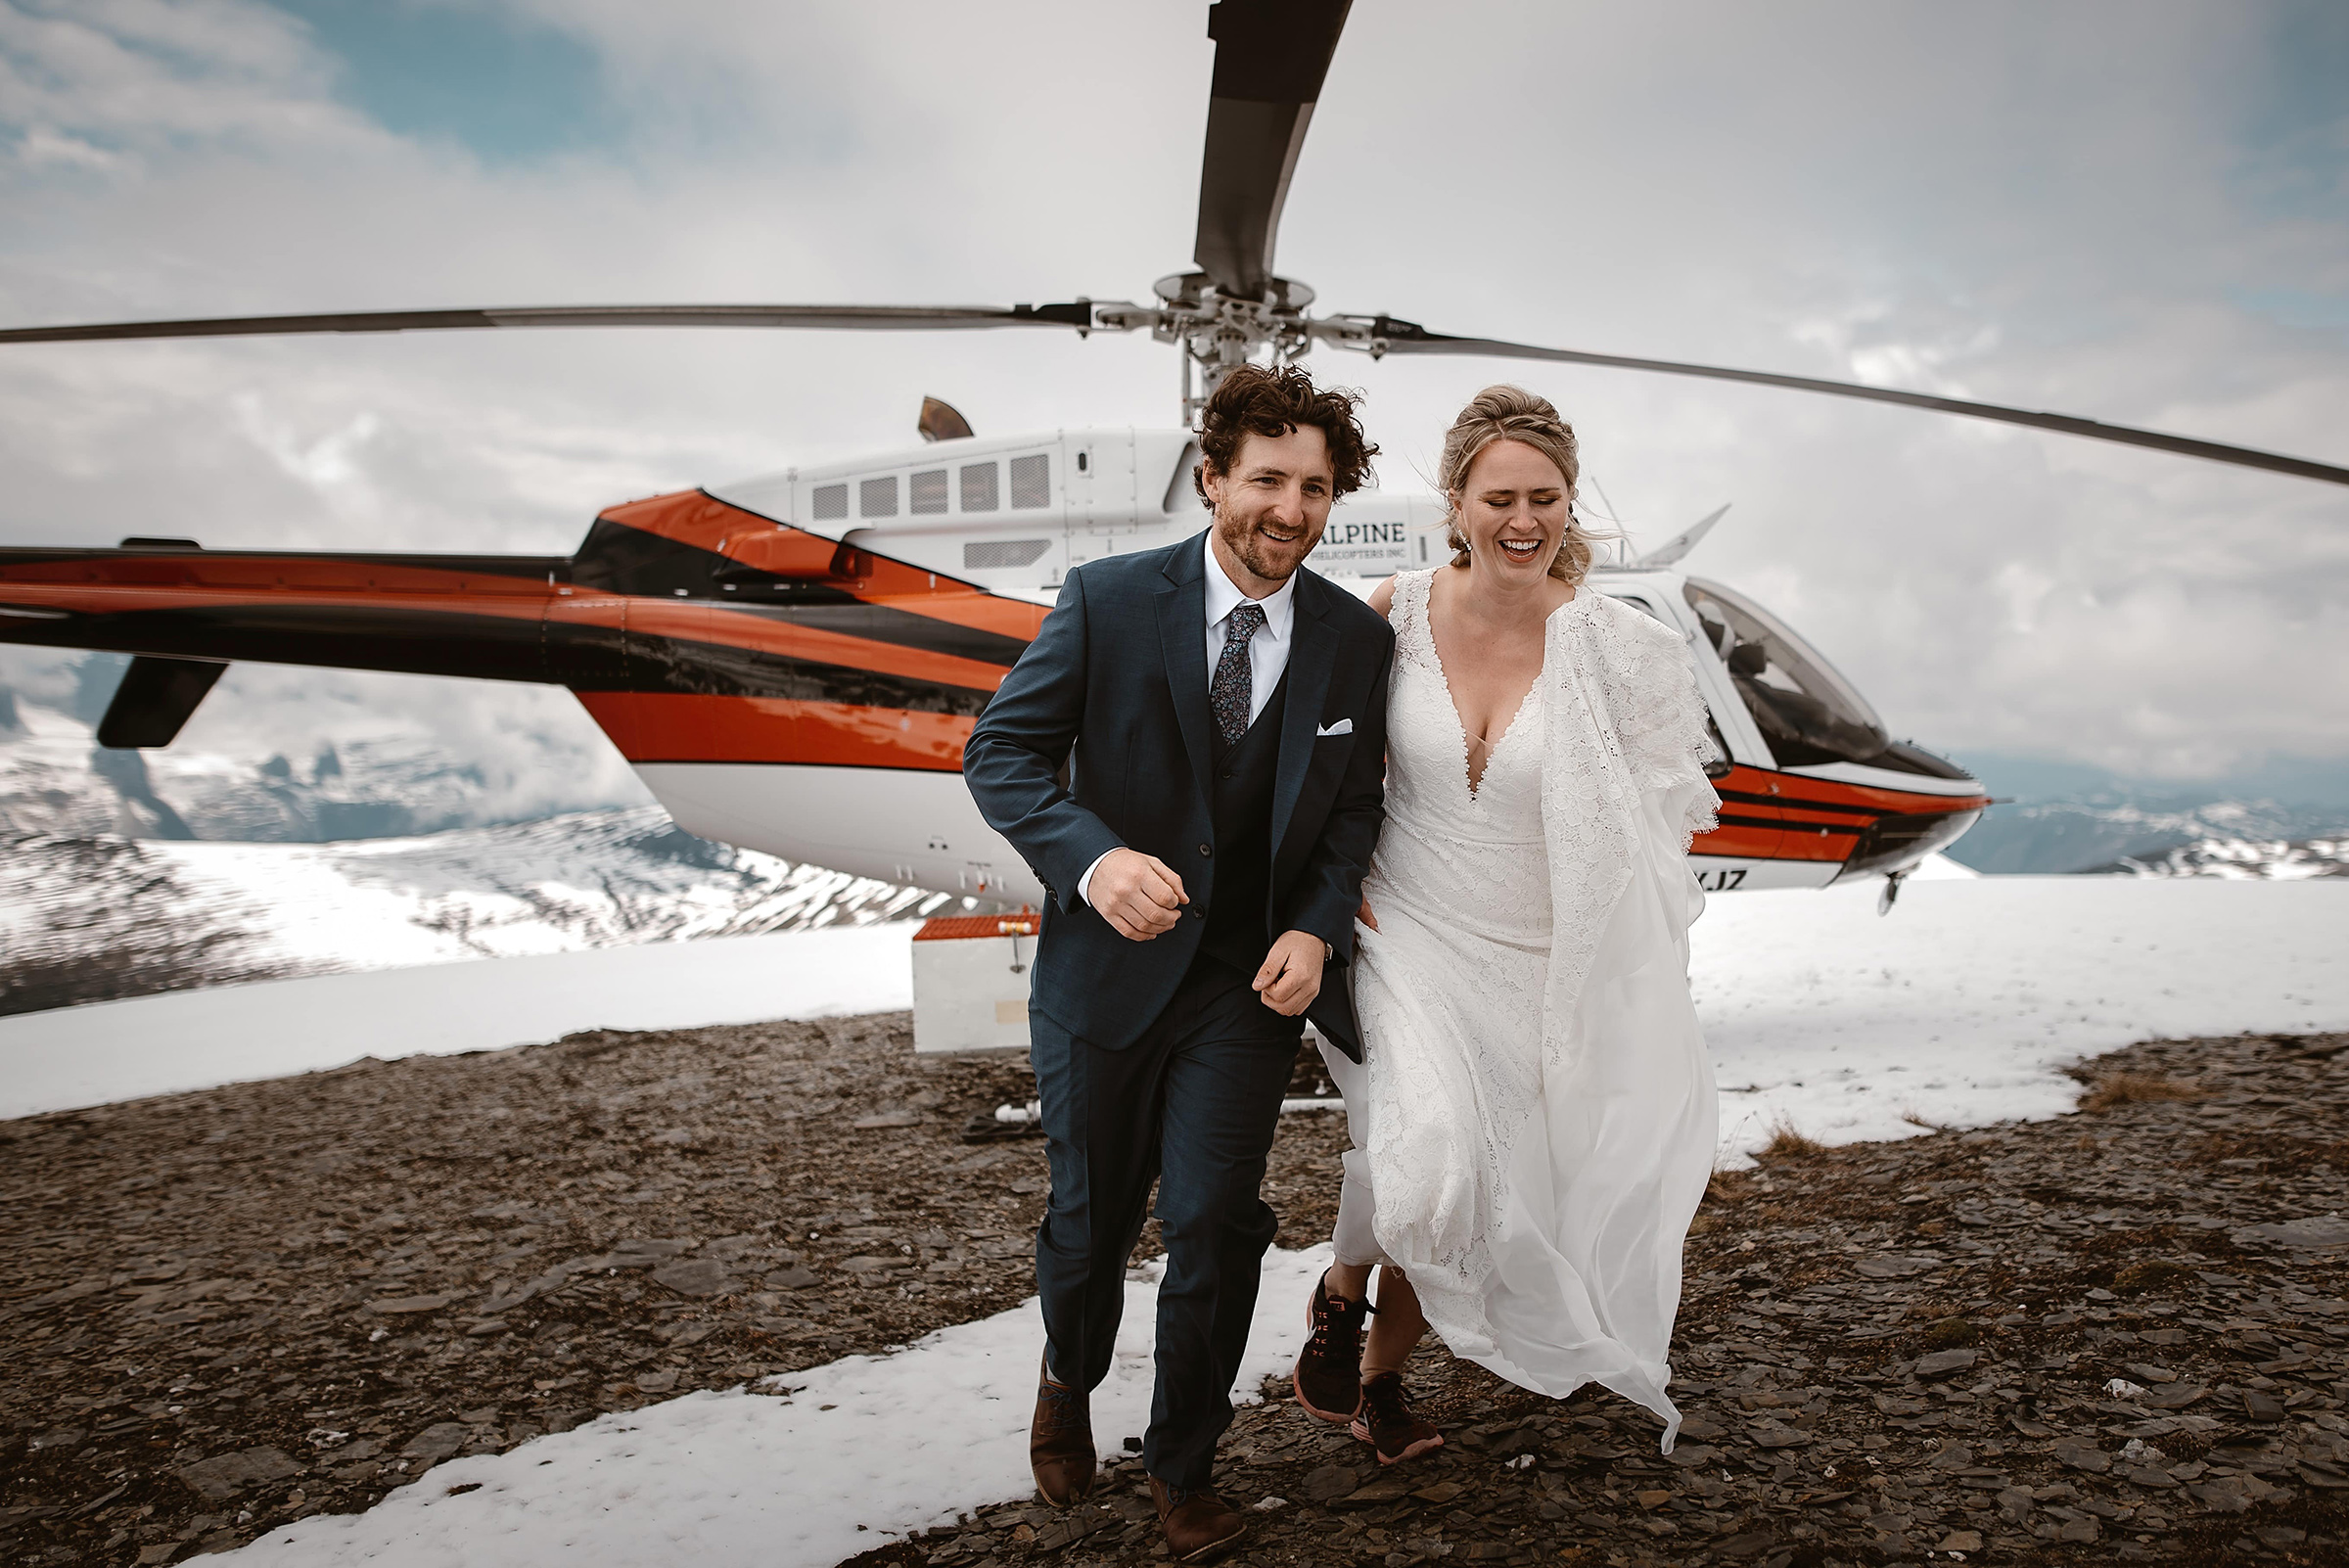 Elopement couple exit helicopter onto snow - photo by Virginia & Evan